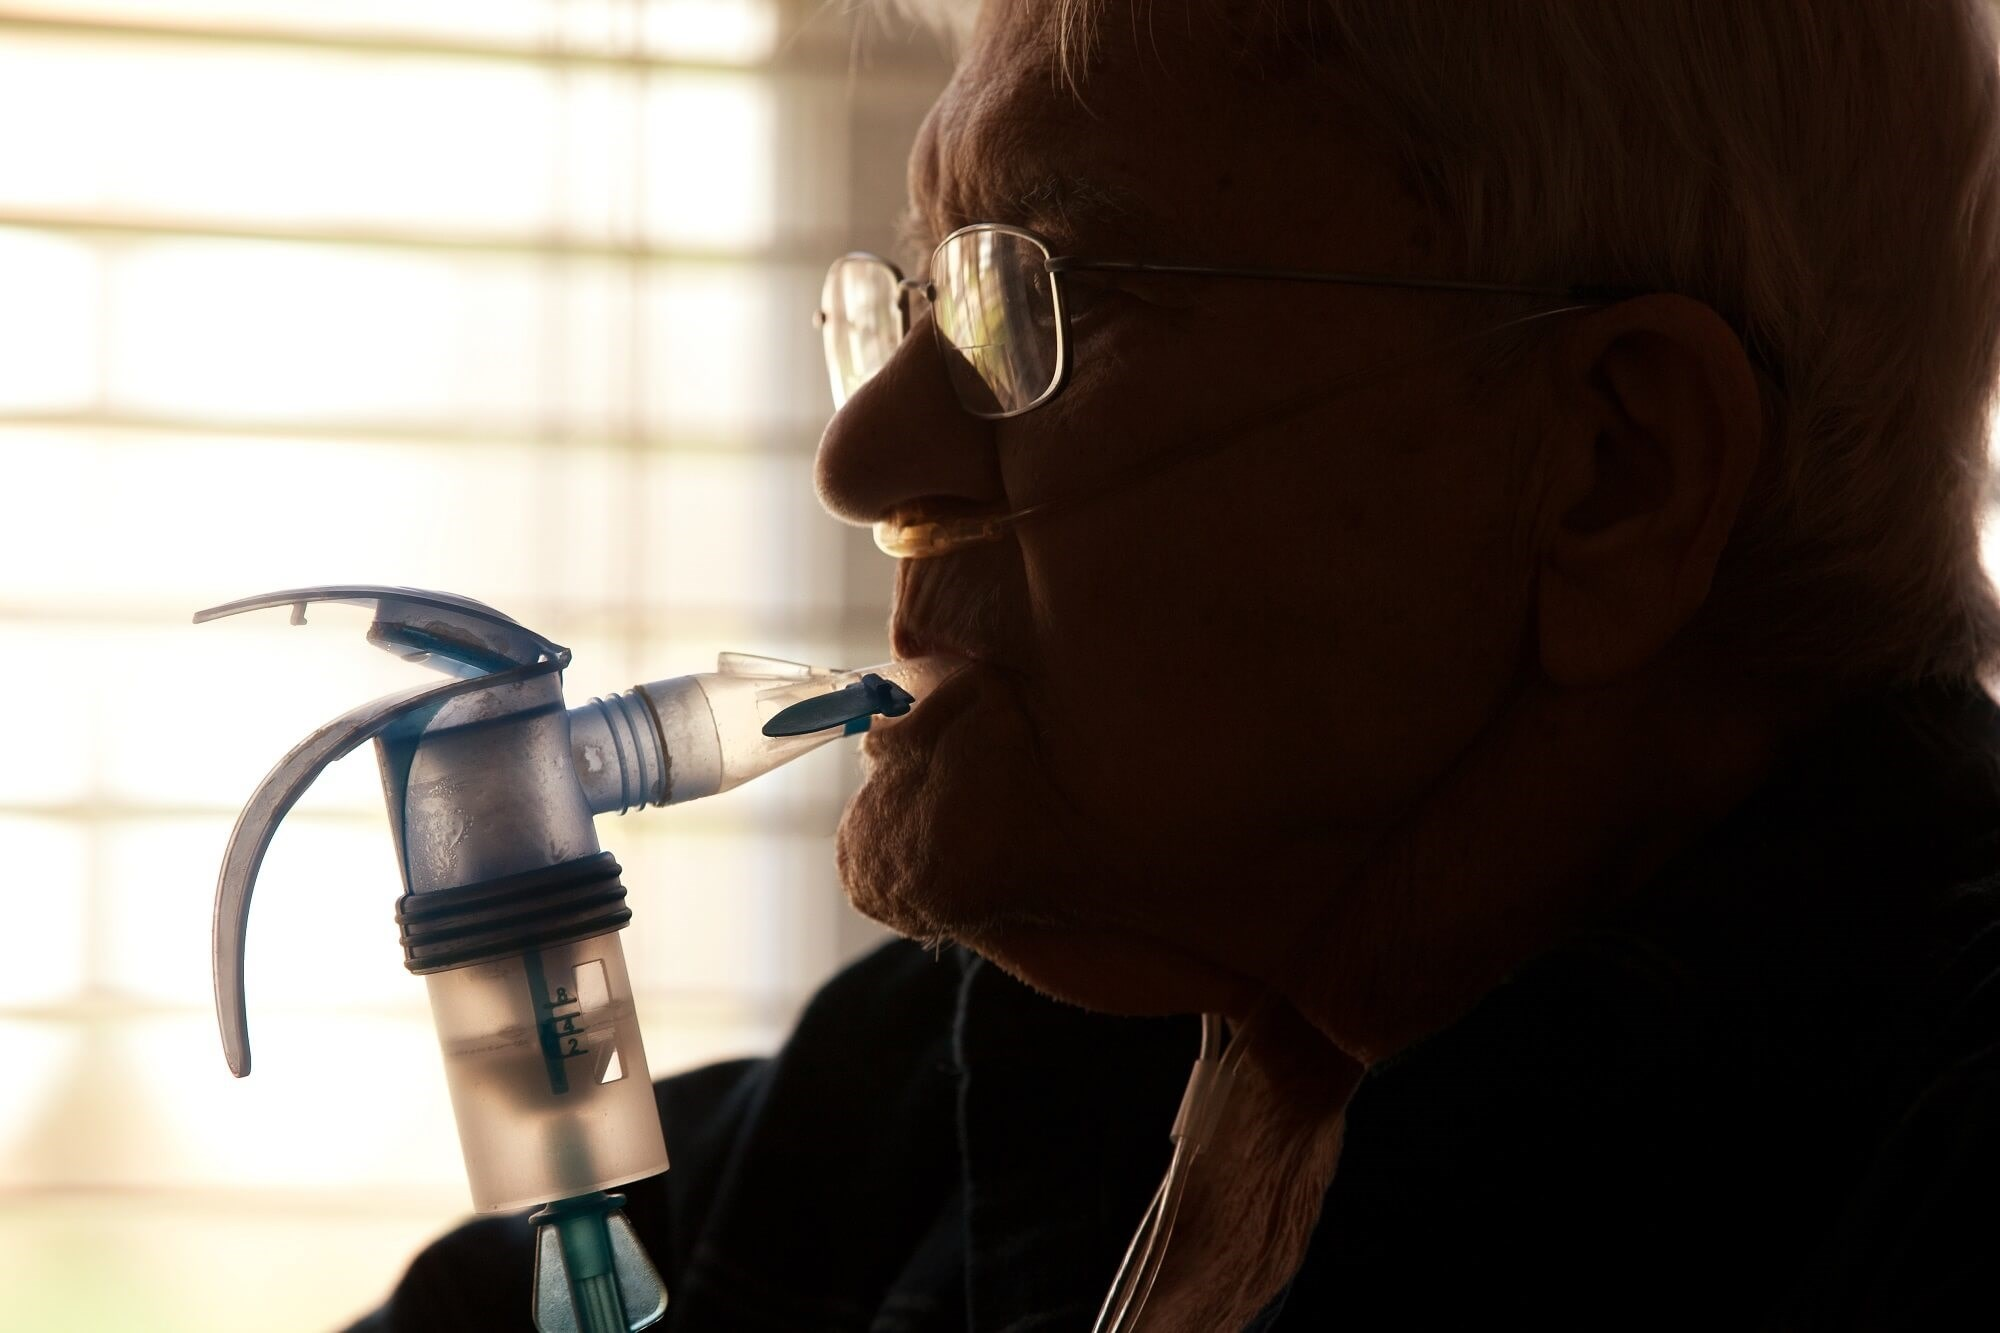 CBT delivered by respiratory nurses is associated with reduced anxiety symptoms and is cost-effective for patients with COPD.